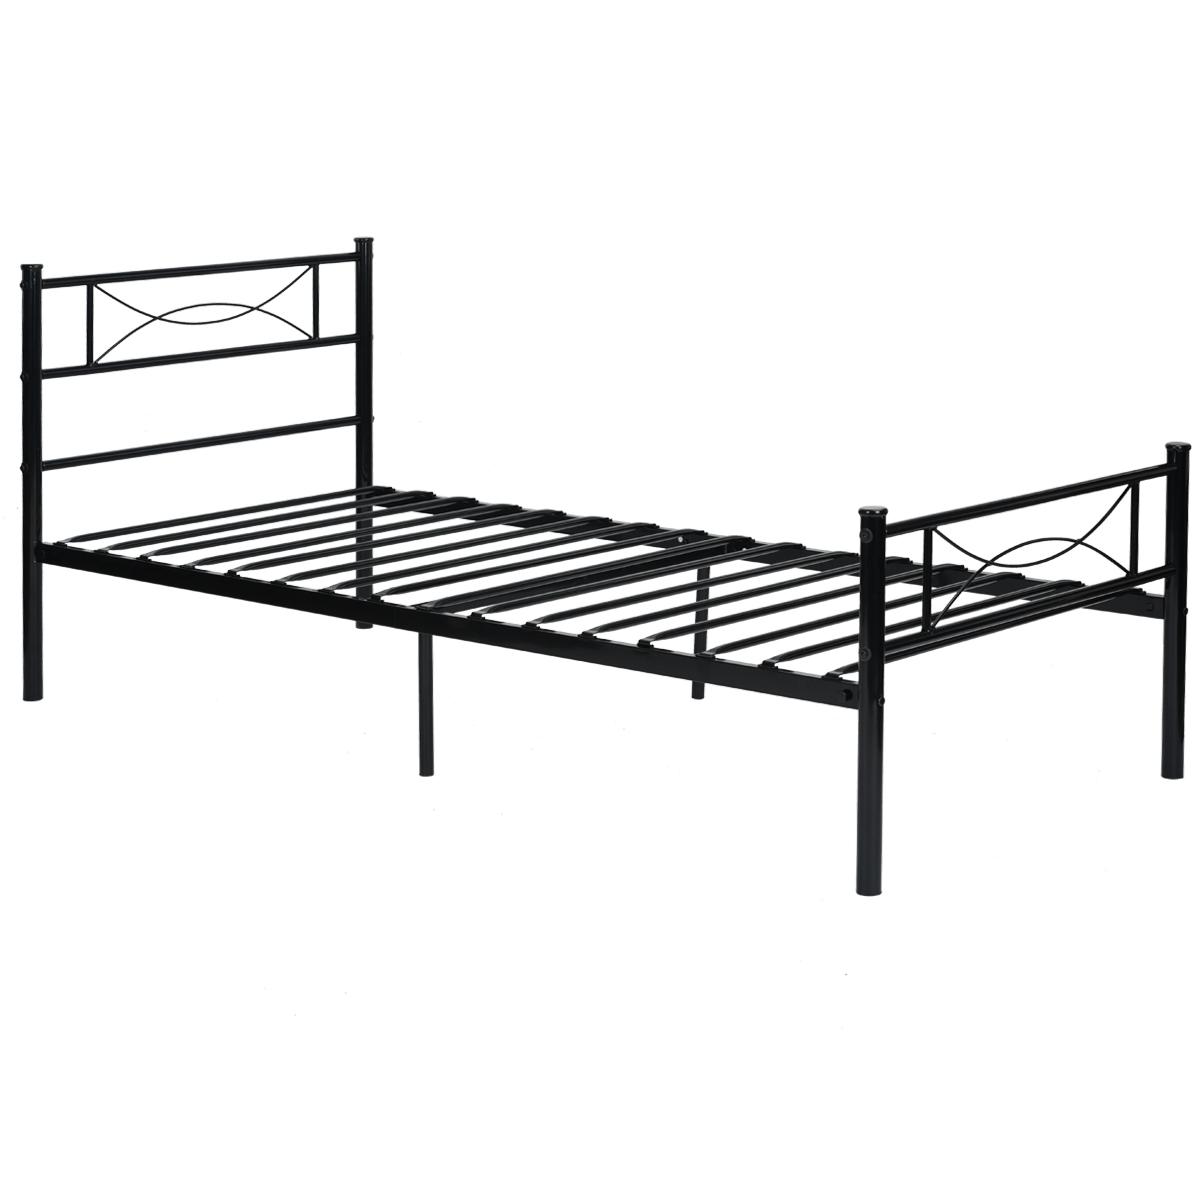 Bedroom metal bed frame platform mattress foundation for Full size bed frame